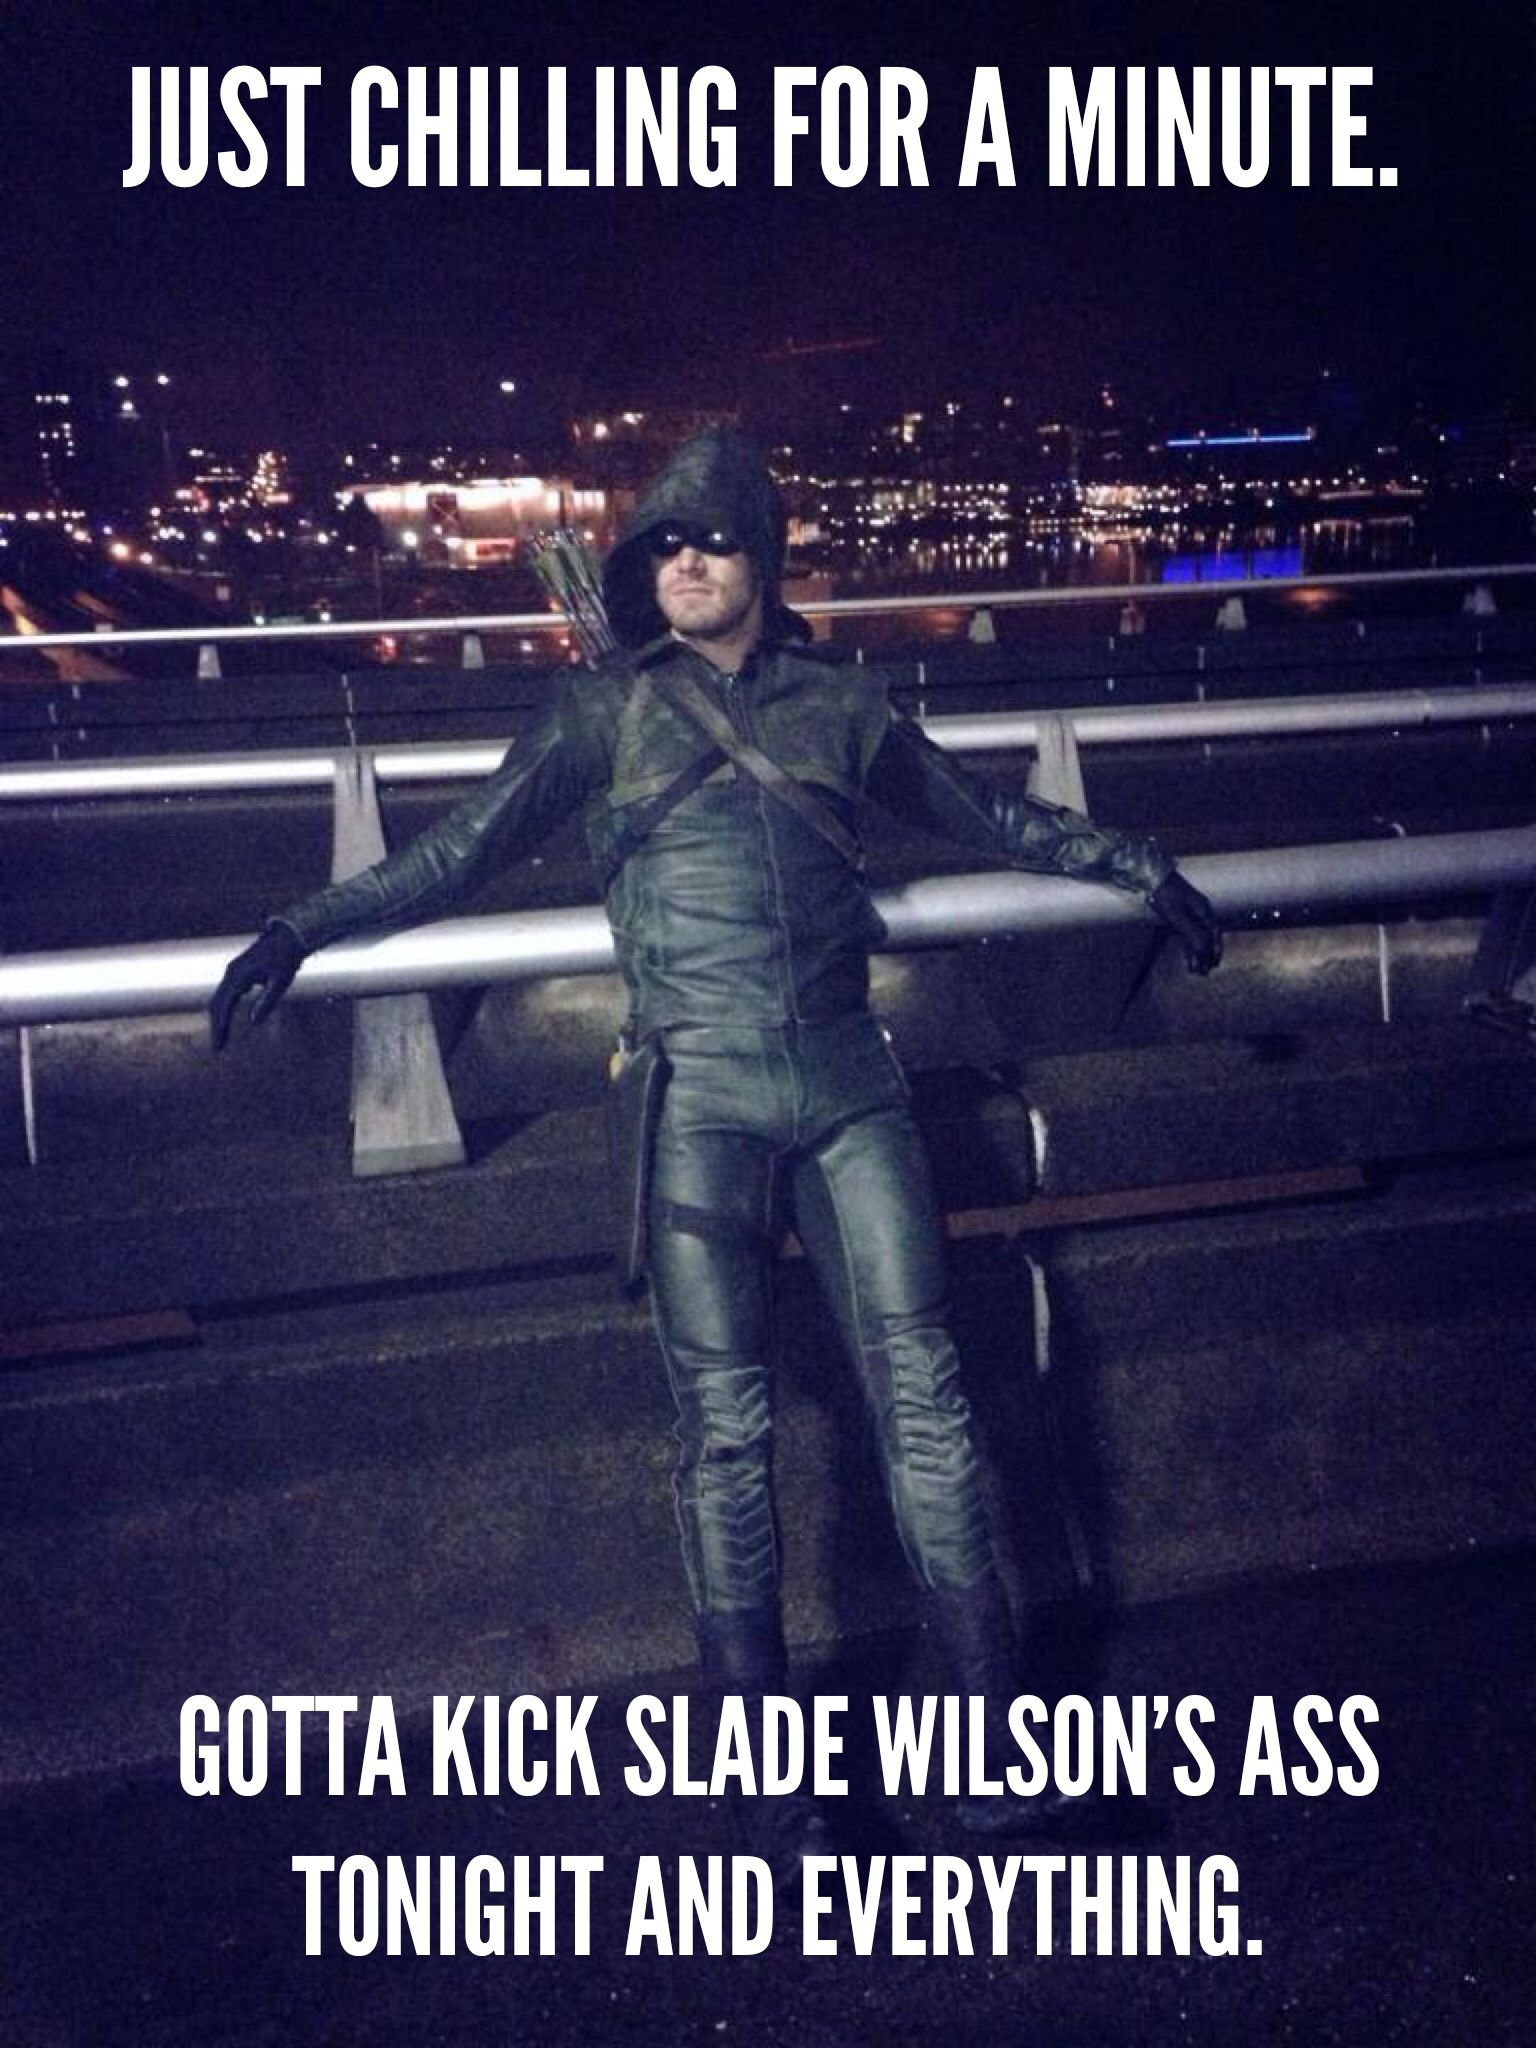 Another Arrow meme. Stephen Amell liked this one, so yay